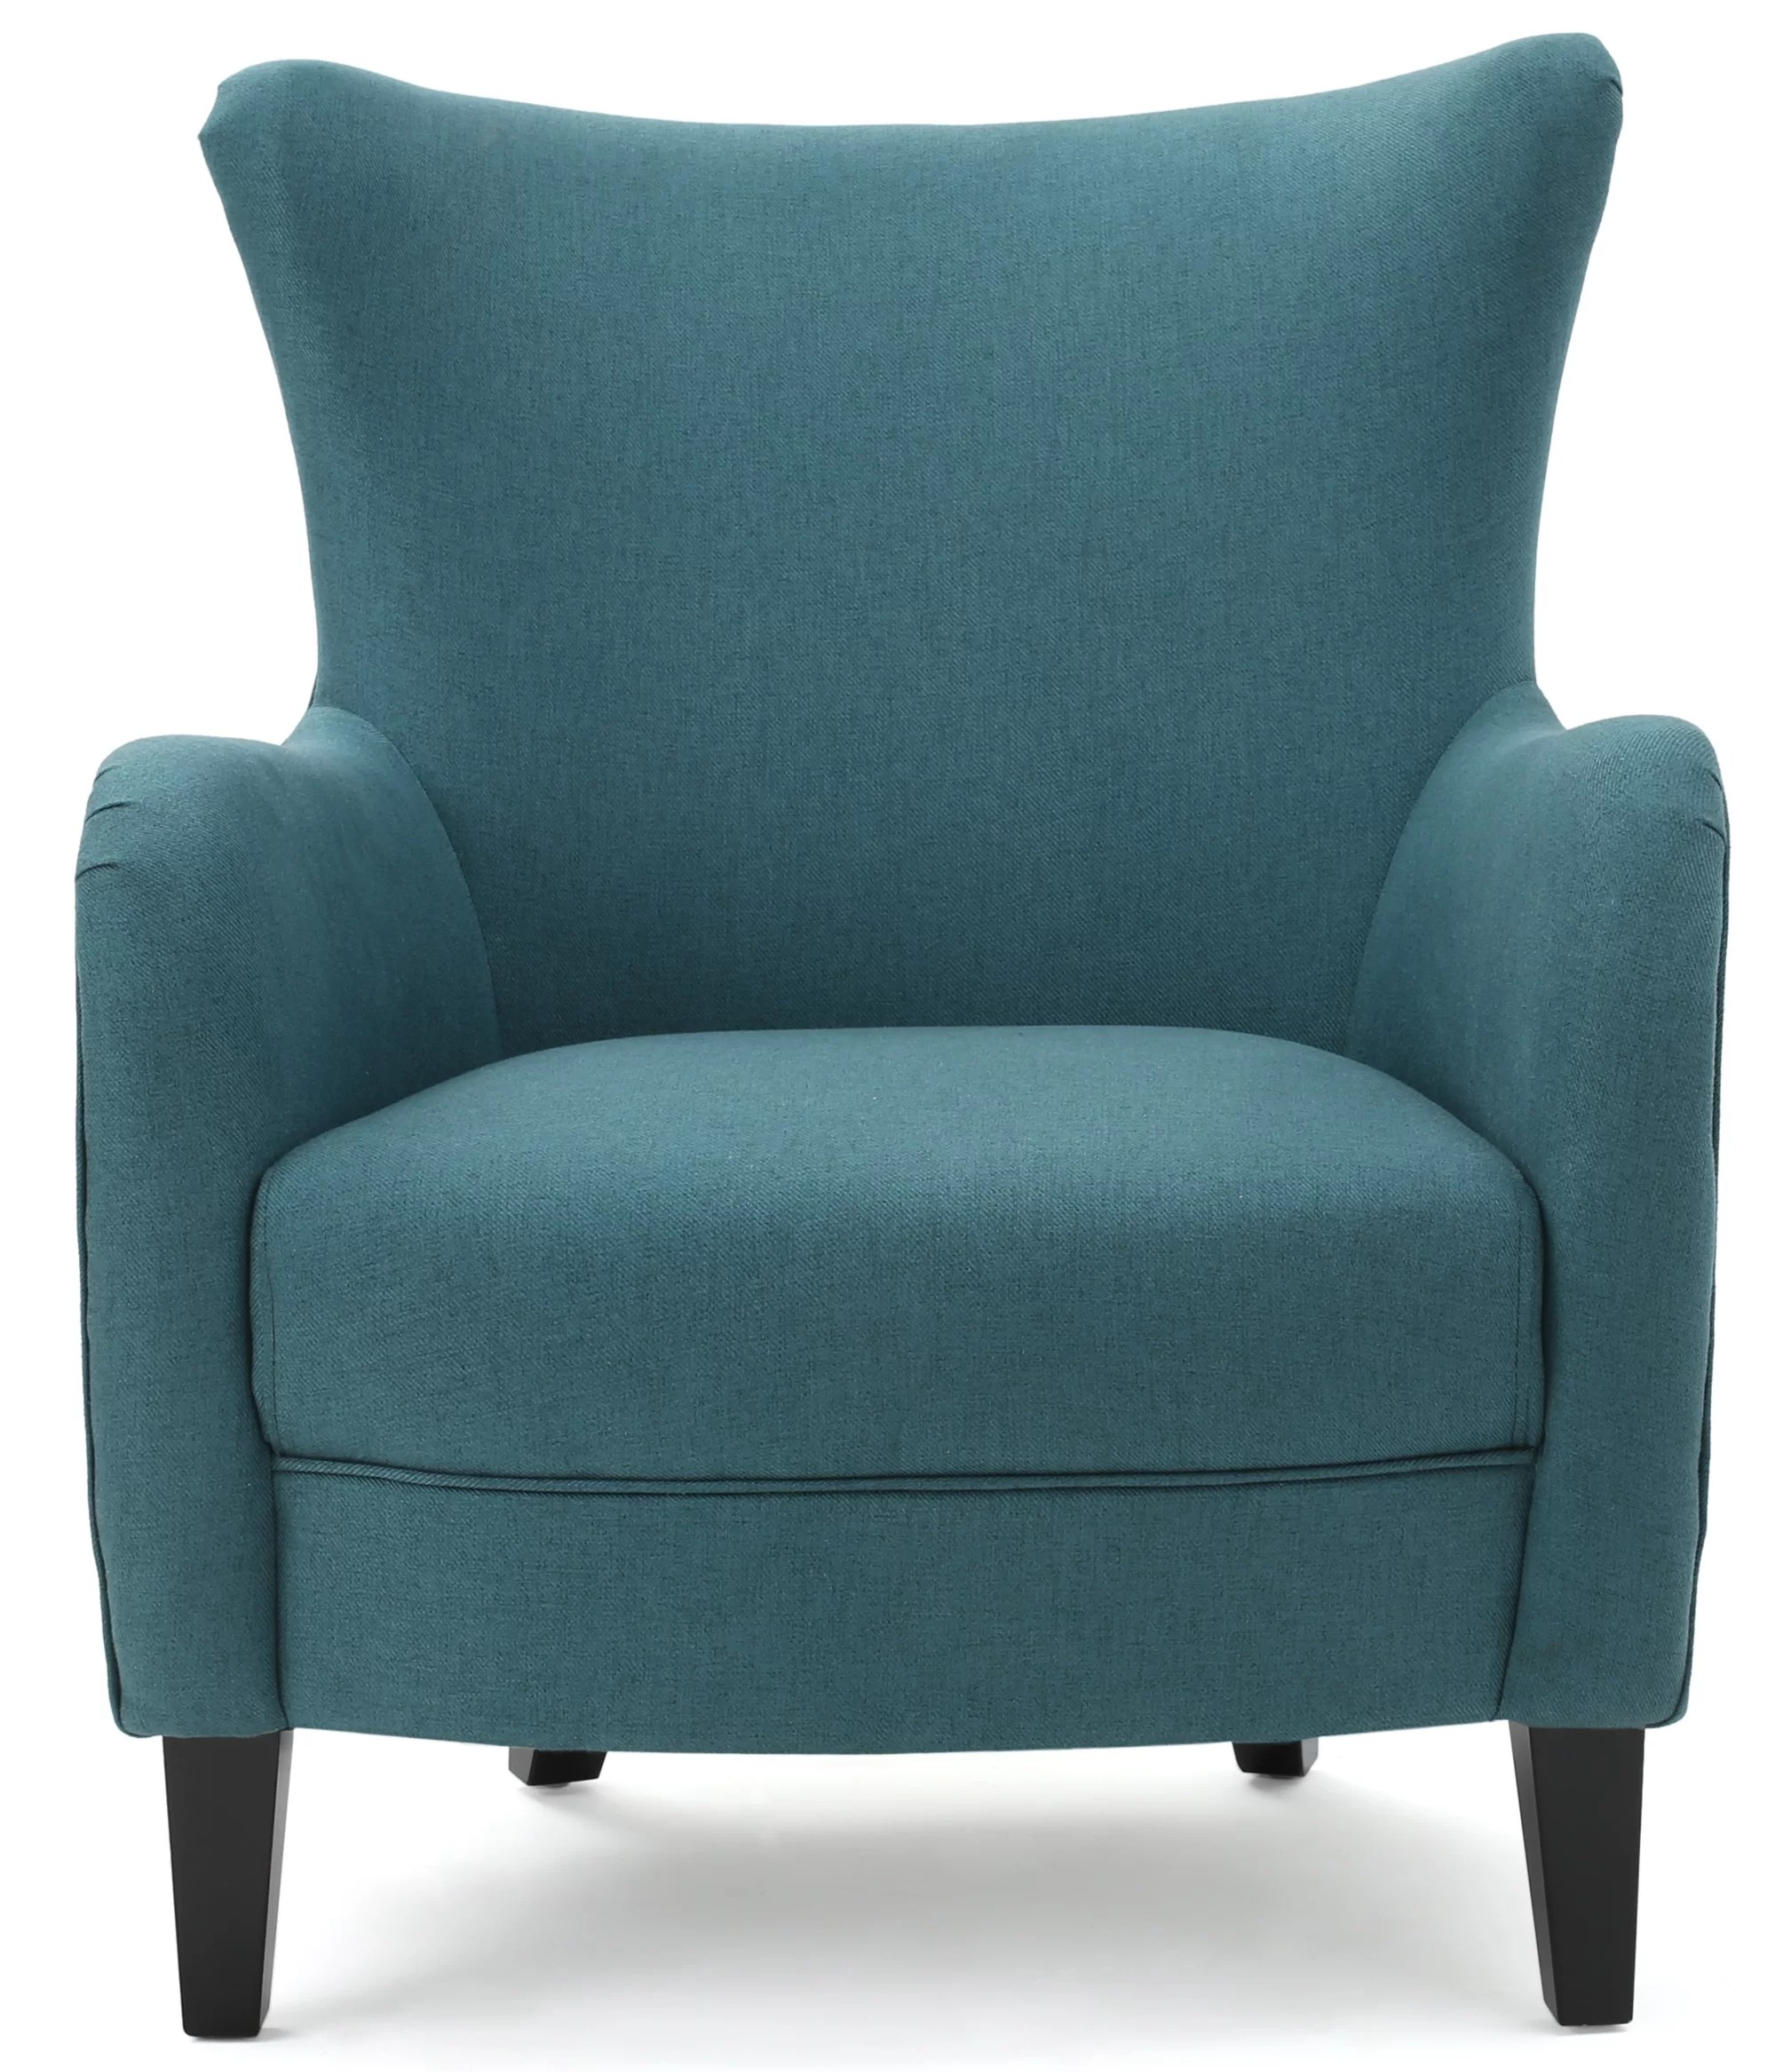 Teal Wingback Chair Nisha Wingback Chair